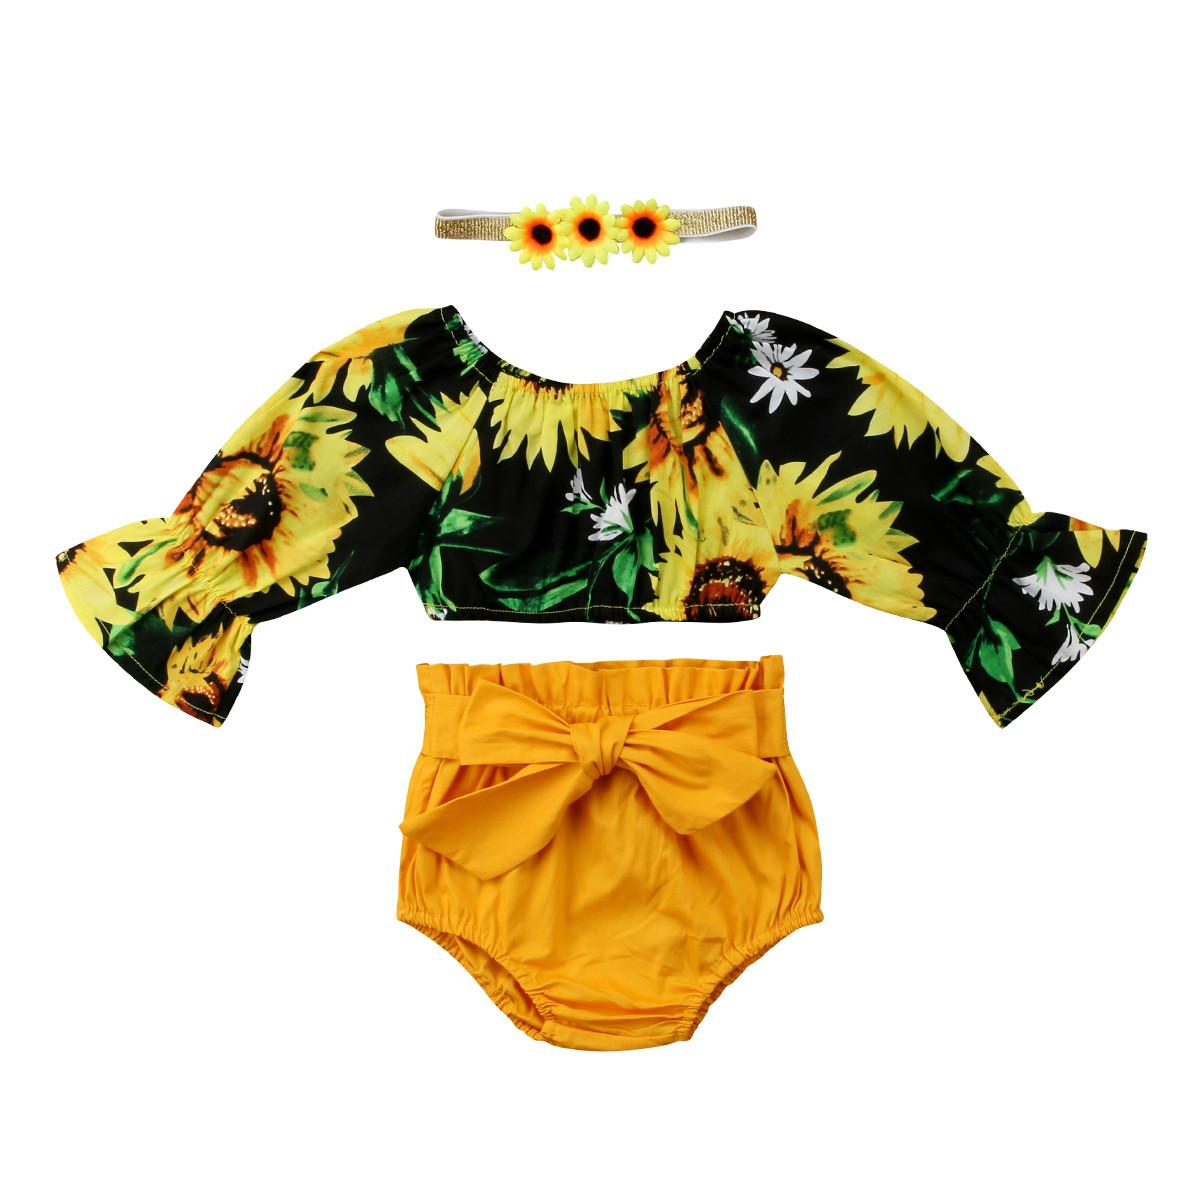 New Toddler Infant Child Girl Kid Floral Crop Tops PP Pants Headband 3Pcs Outfits Set Sun Flower Sunsuit Clothes 1-6T